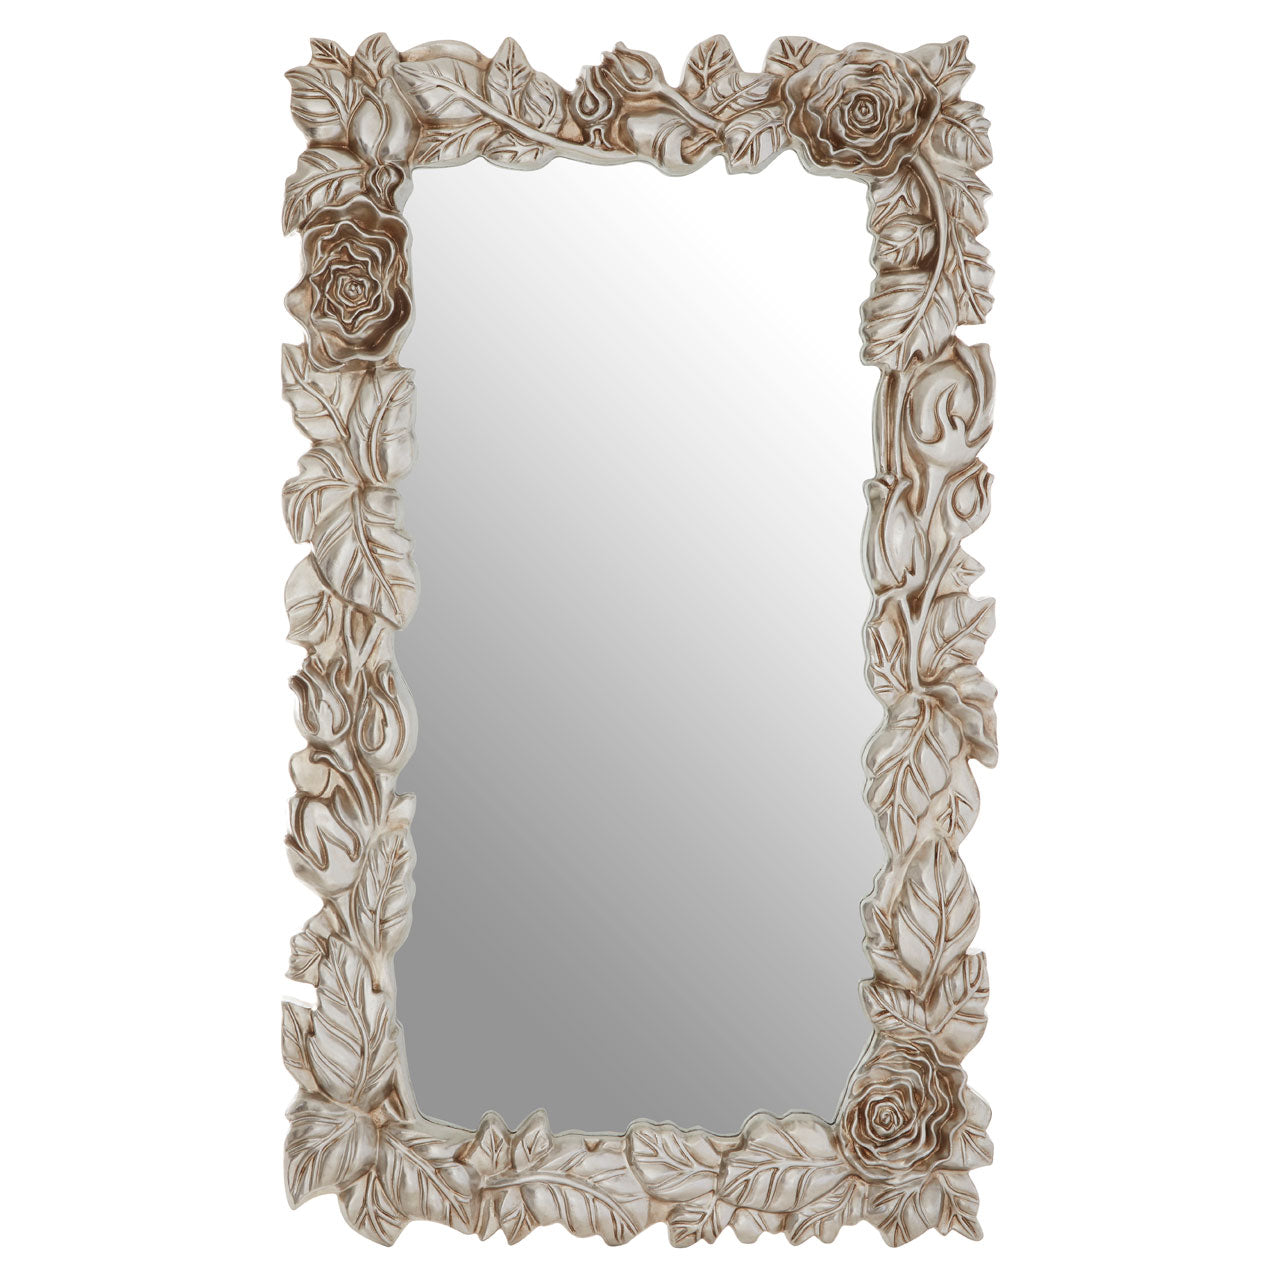 Marseille Leaf Wall Mirror Champagne